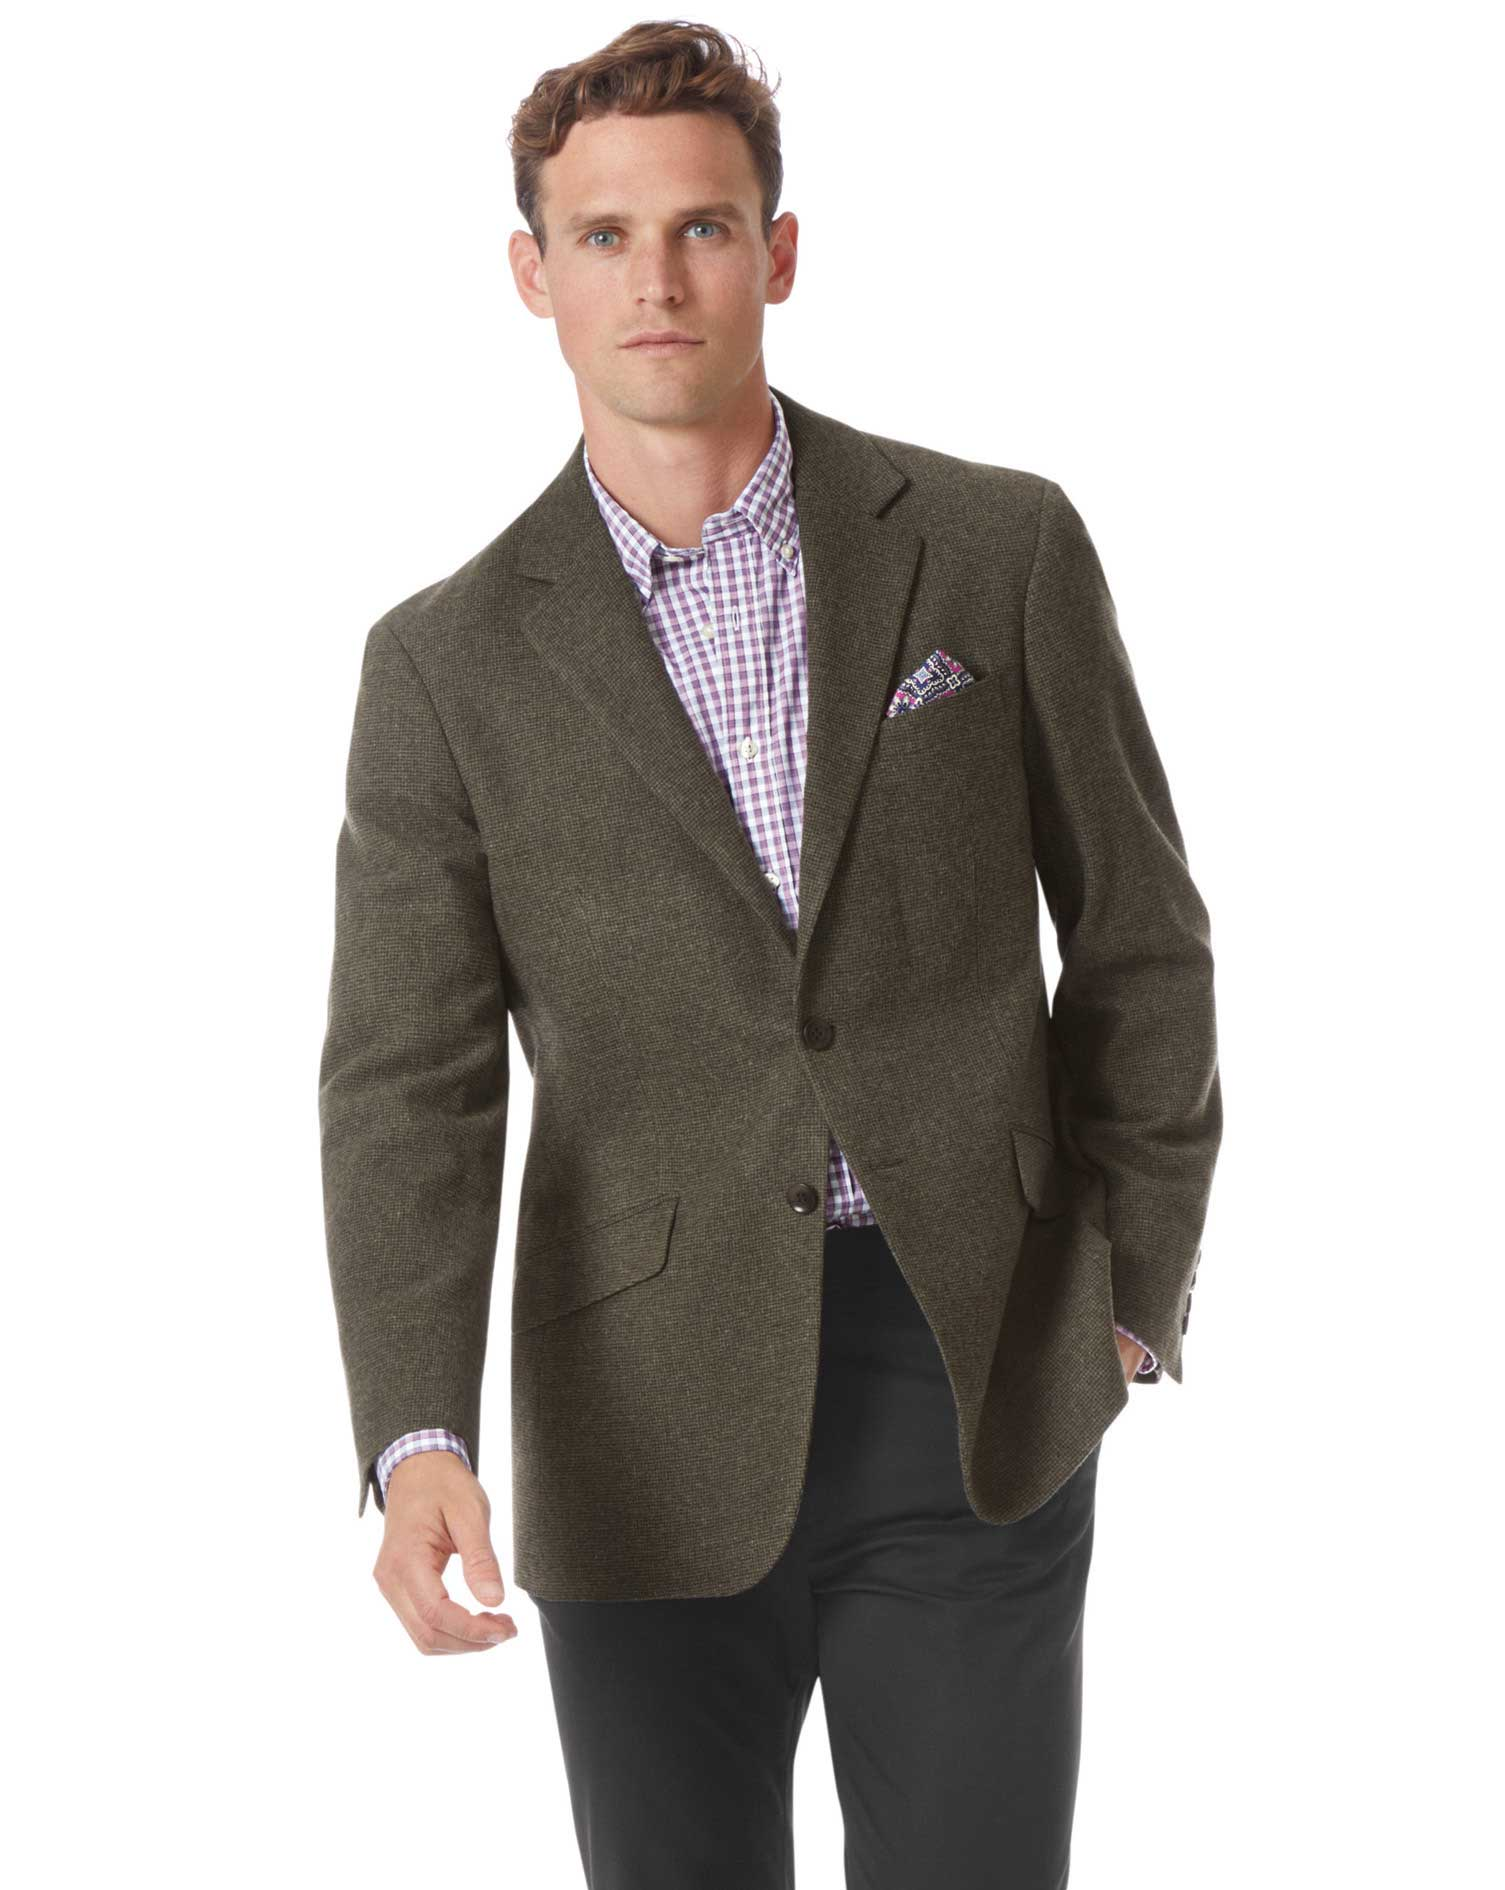 Classic Fit Green Wool Jacket Size 44 Regular by Charles Tyrwhitt